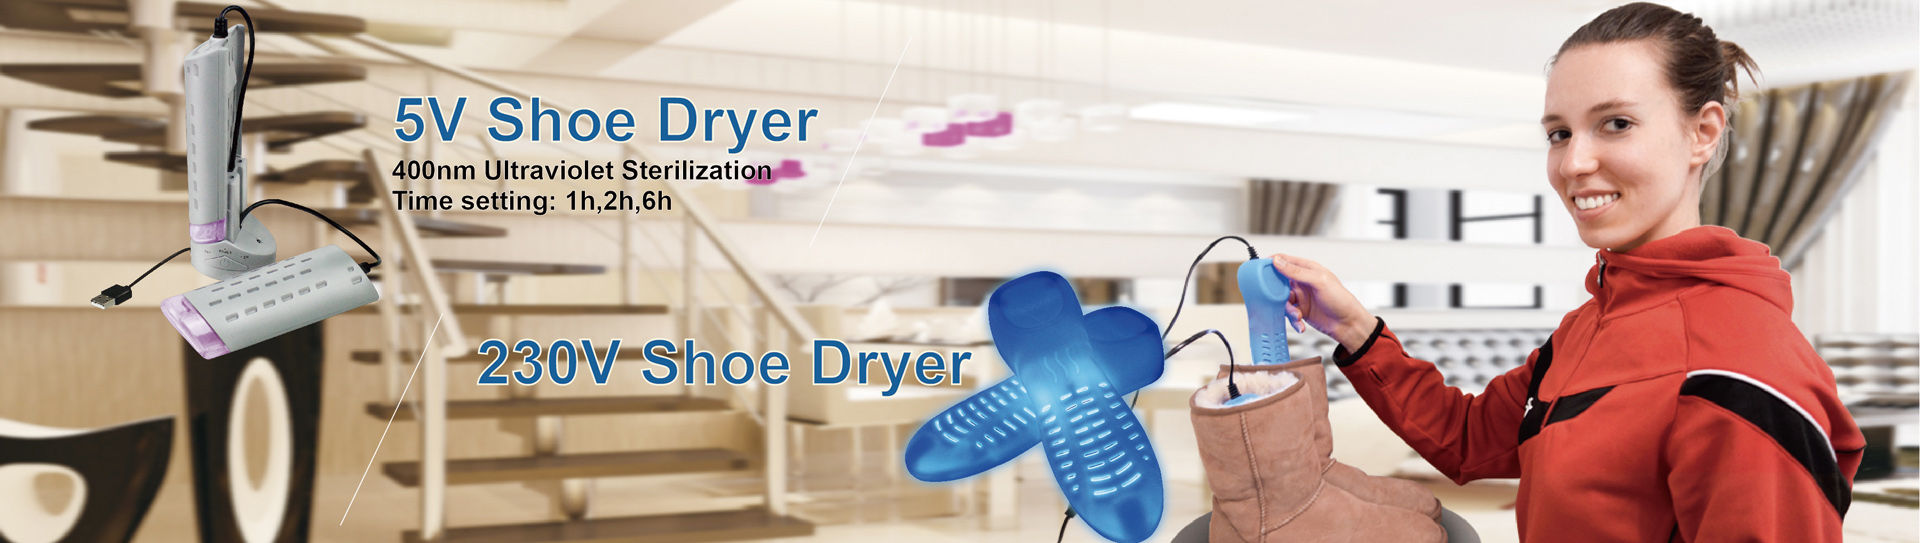 Shoes Dryer